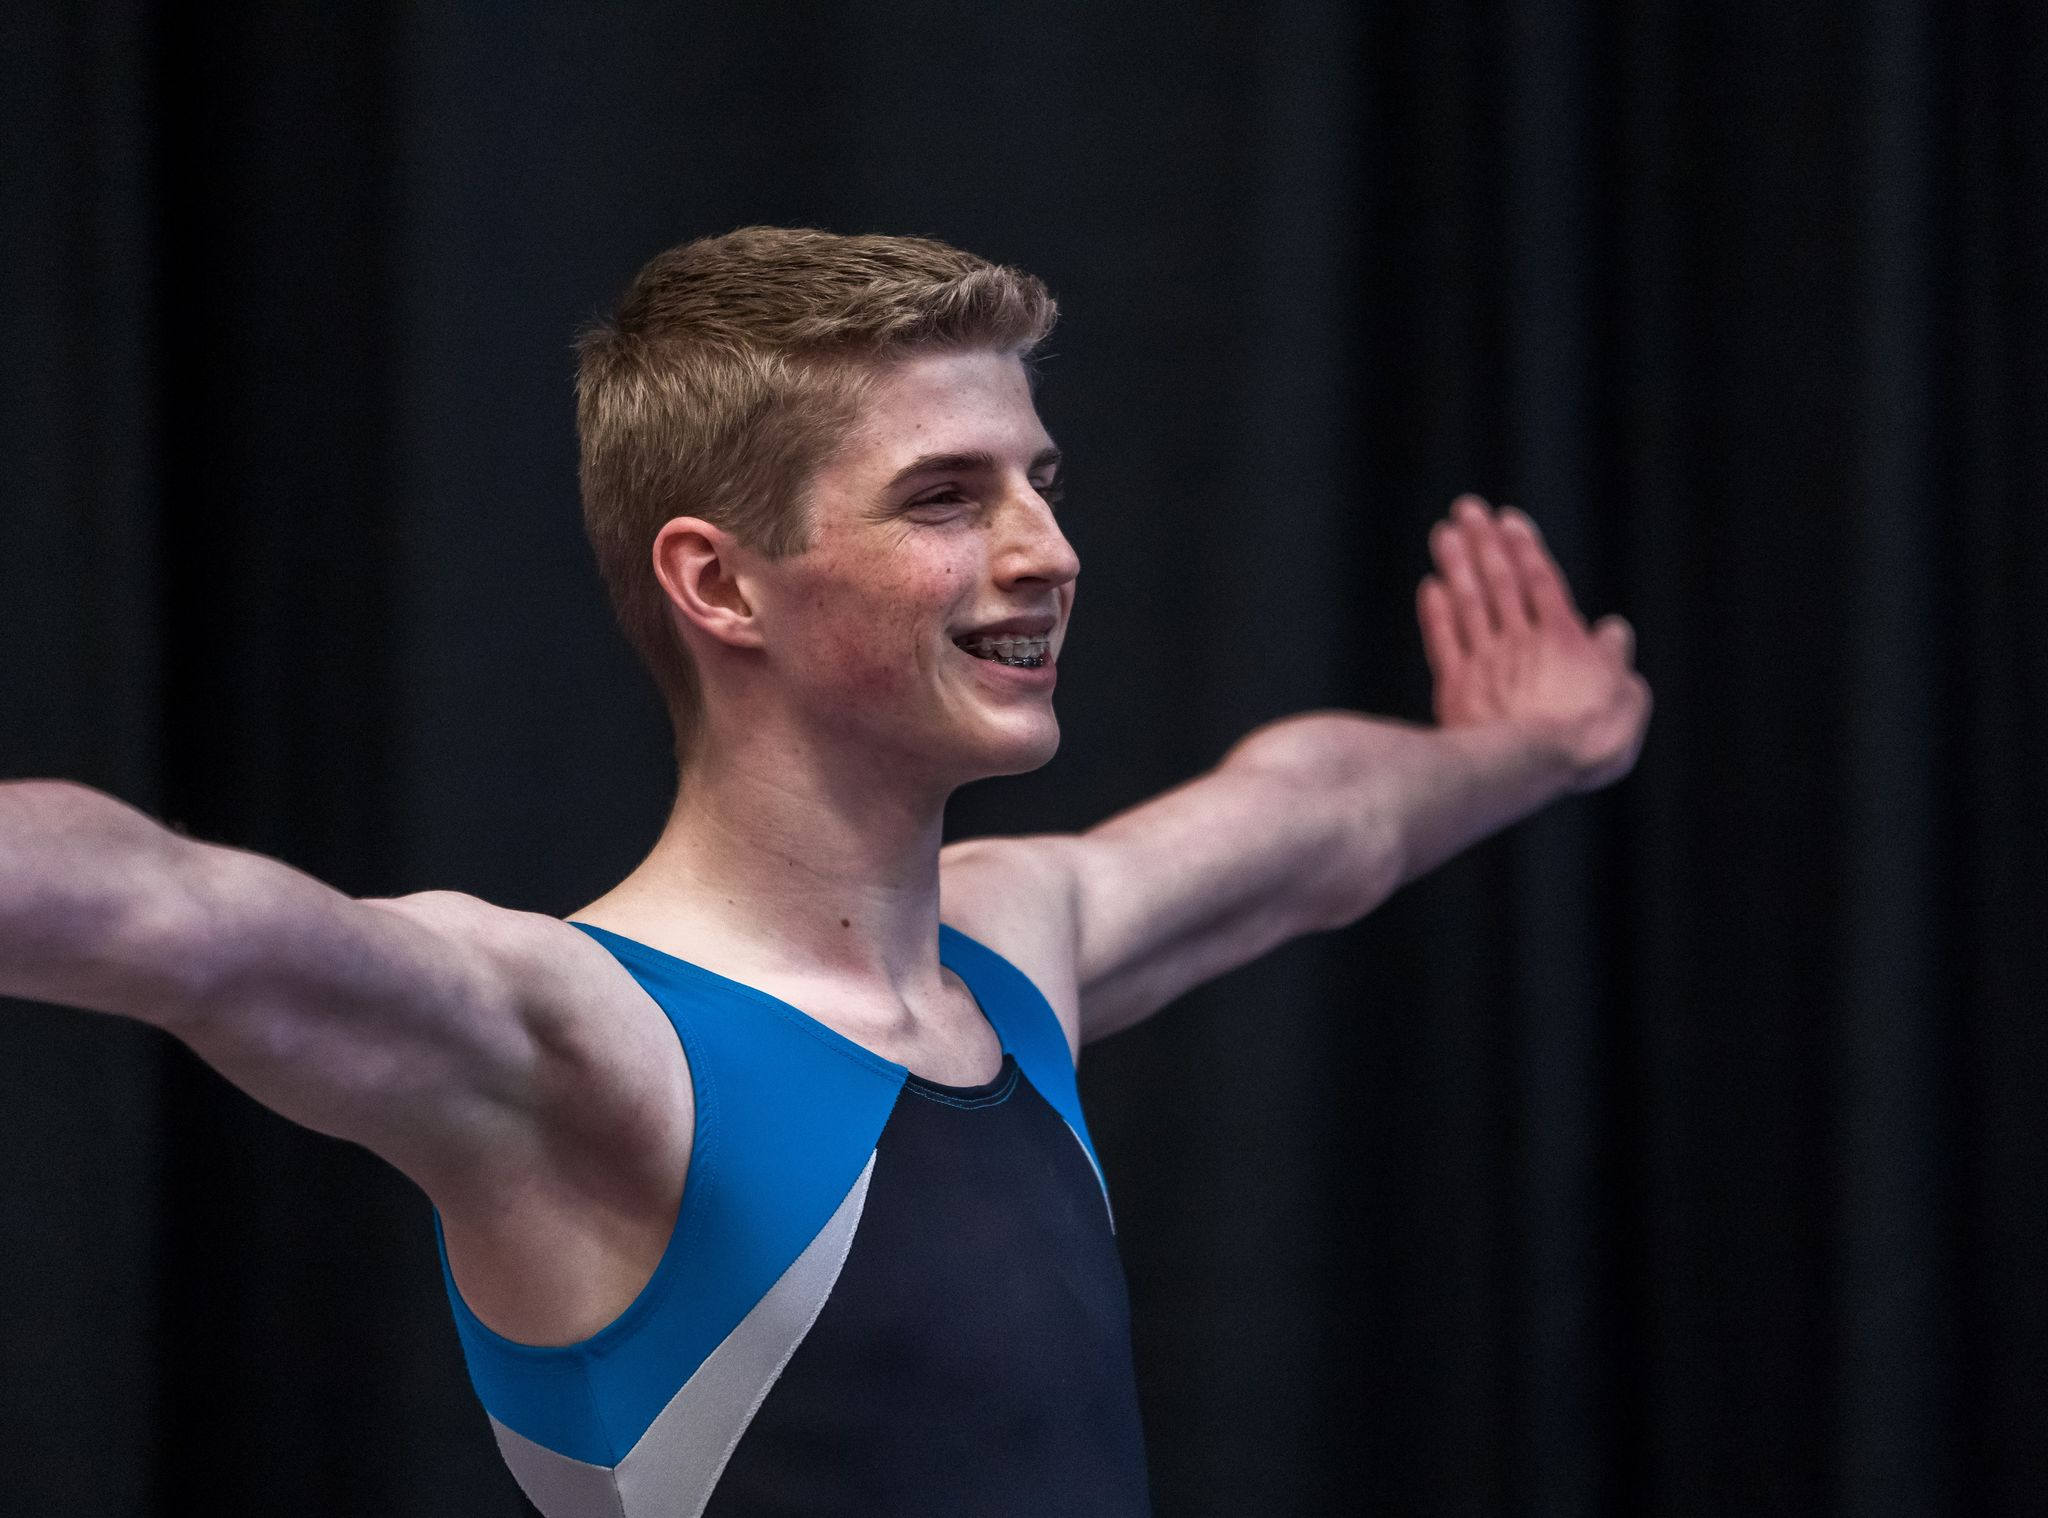 Niverville's Isaiah Klassen is a strong candidate to represent Canada at the upcoming World Trampoline and Tumbling Championships in Japan.